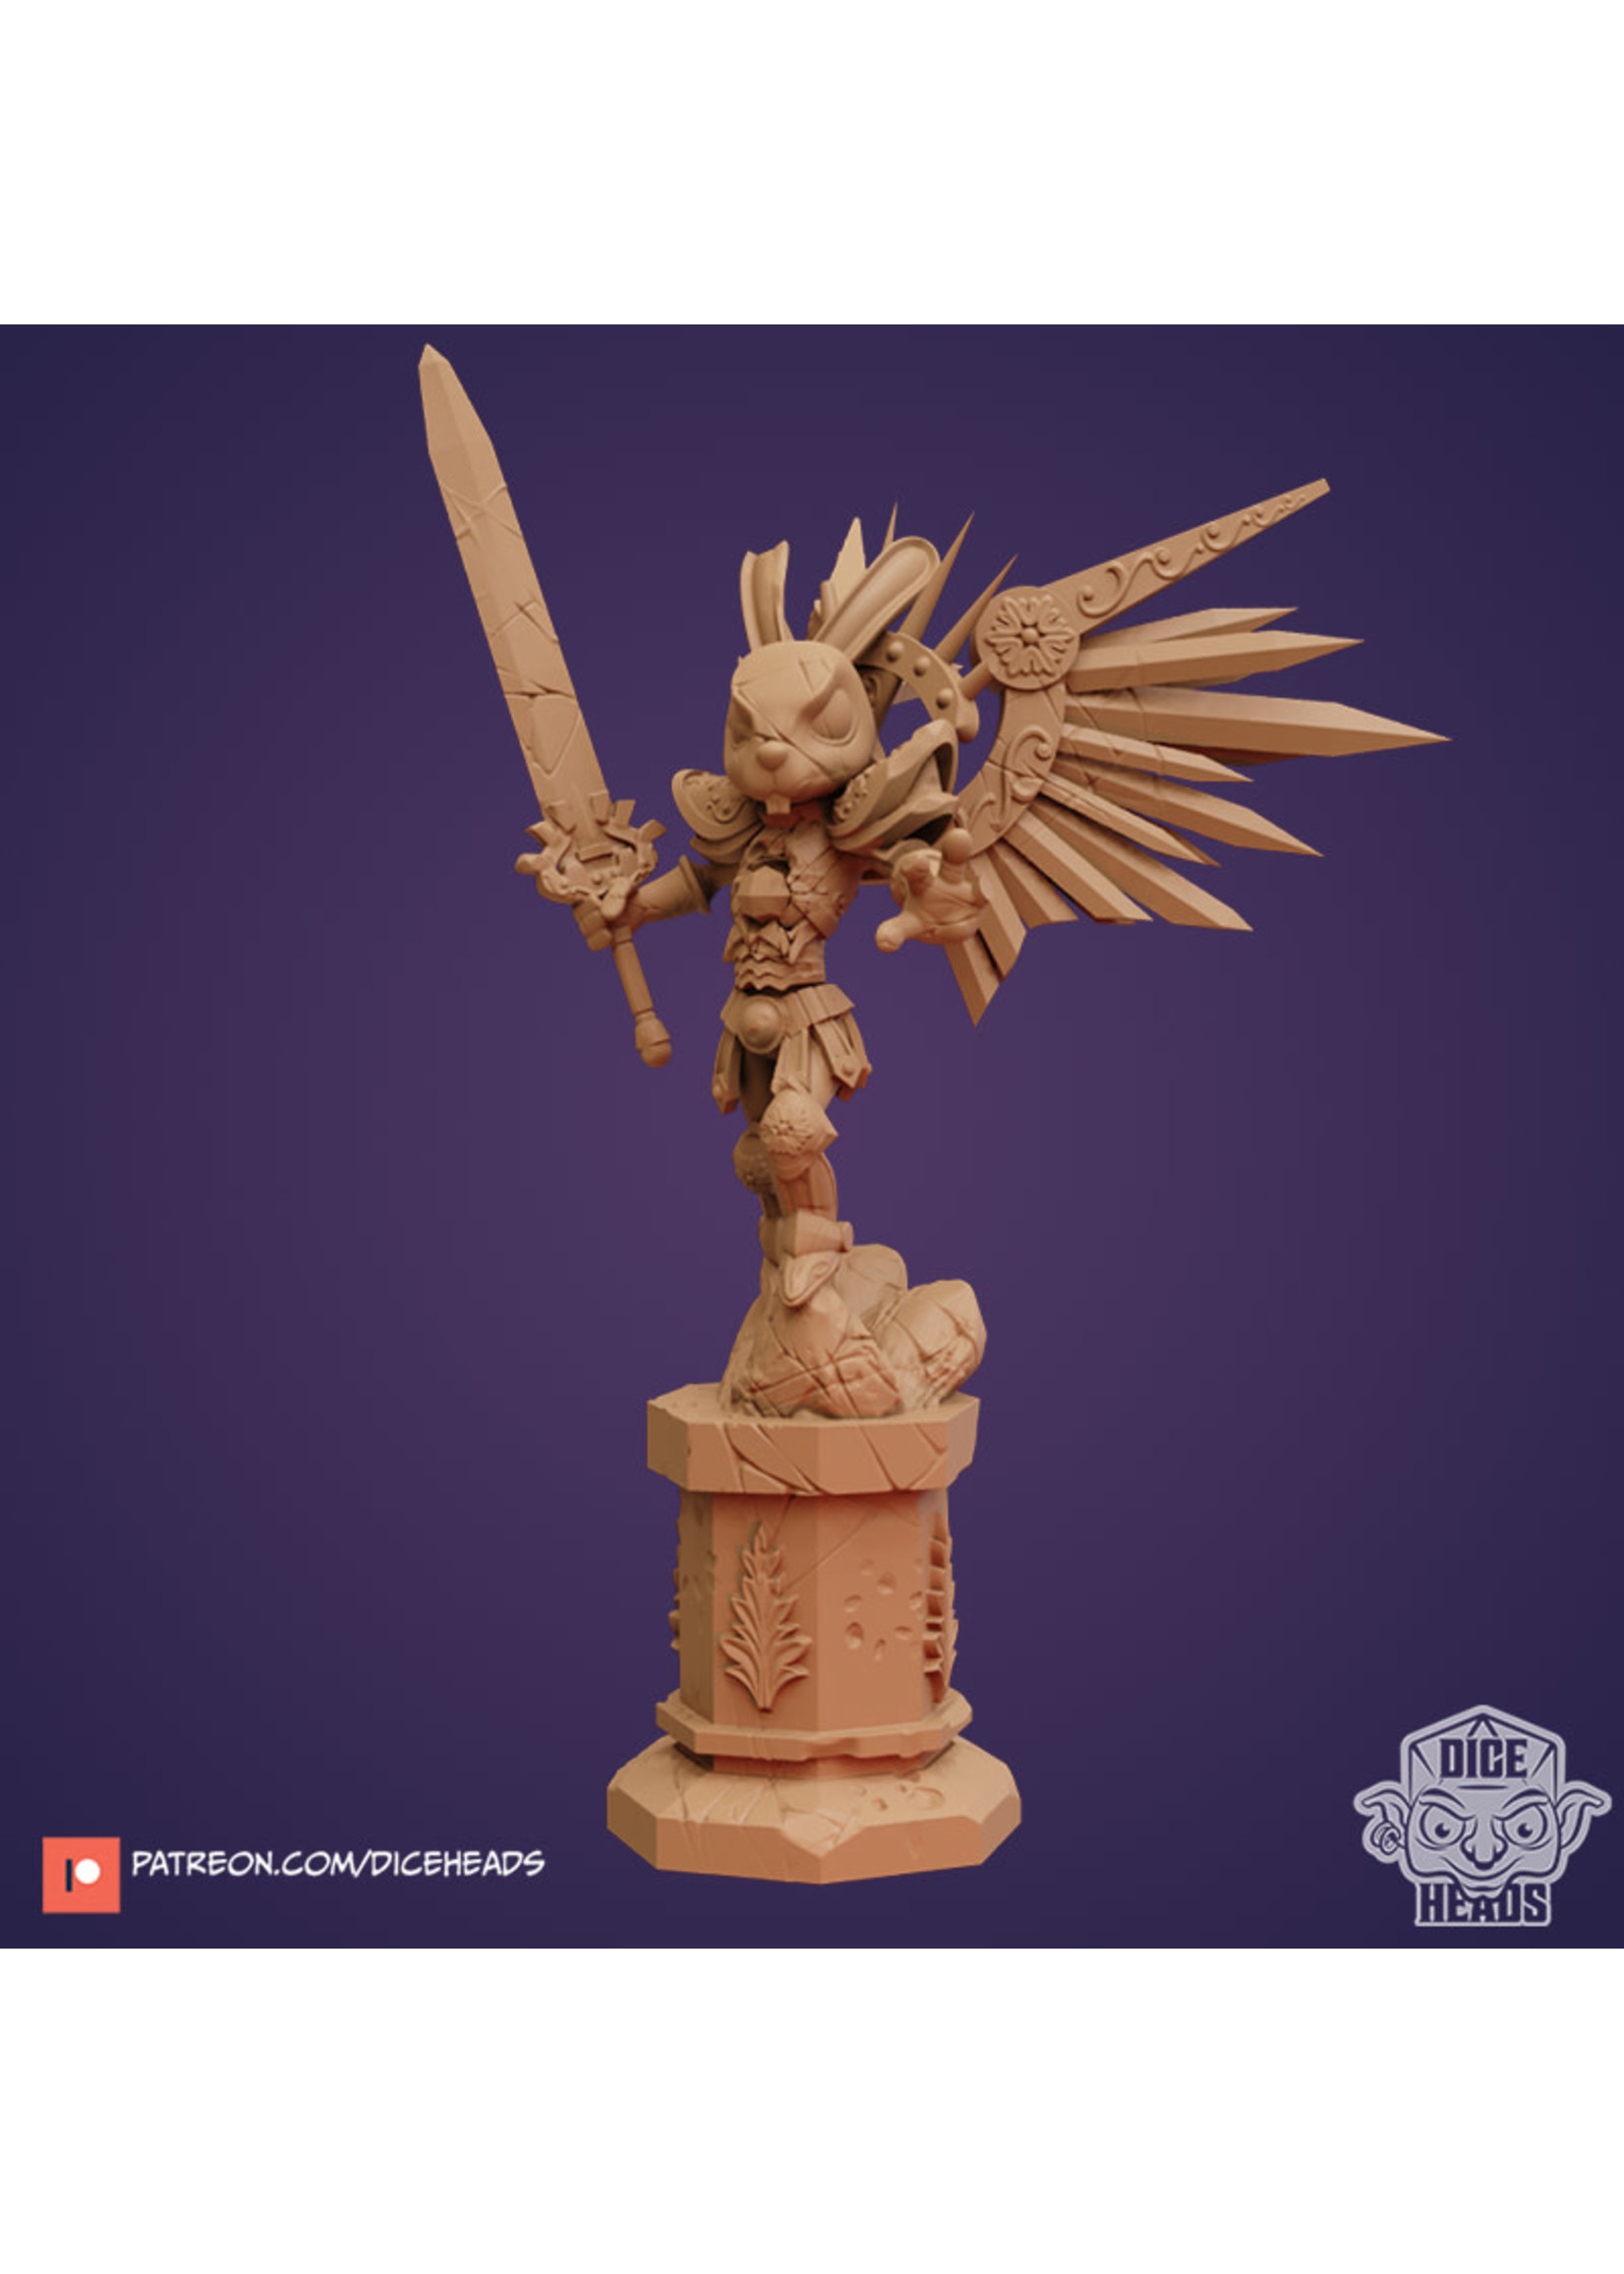 3D Printed Miniature - Broken Lapina with Wings - Dungeons & Dragons - Zoontalis KS